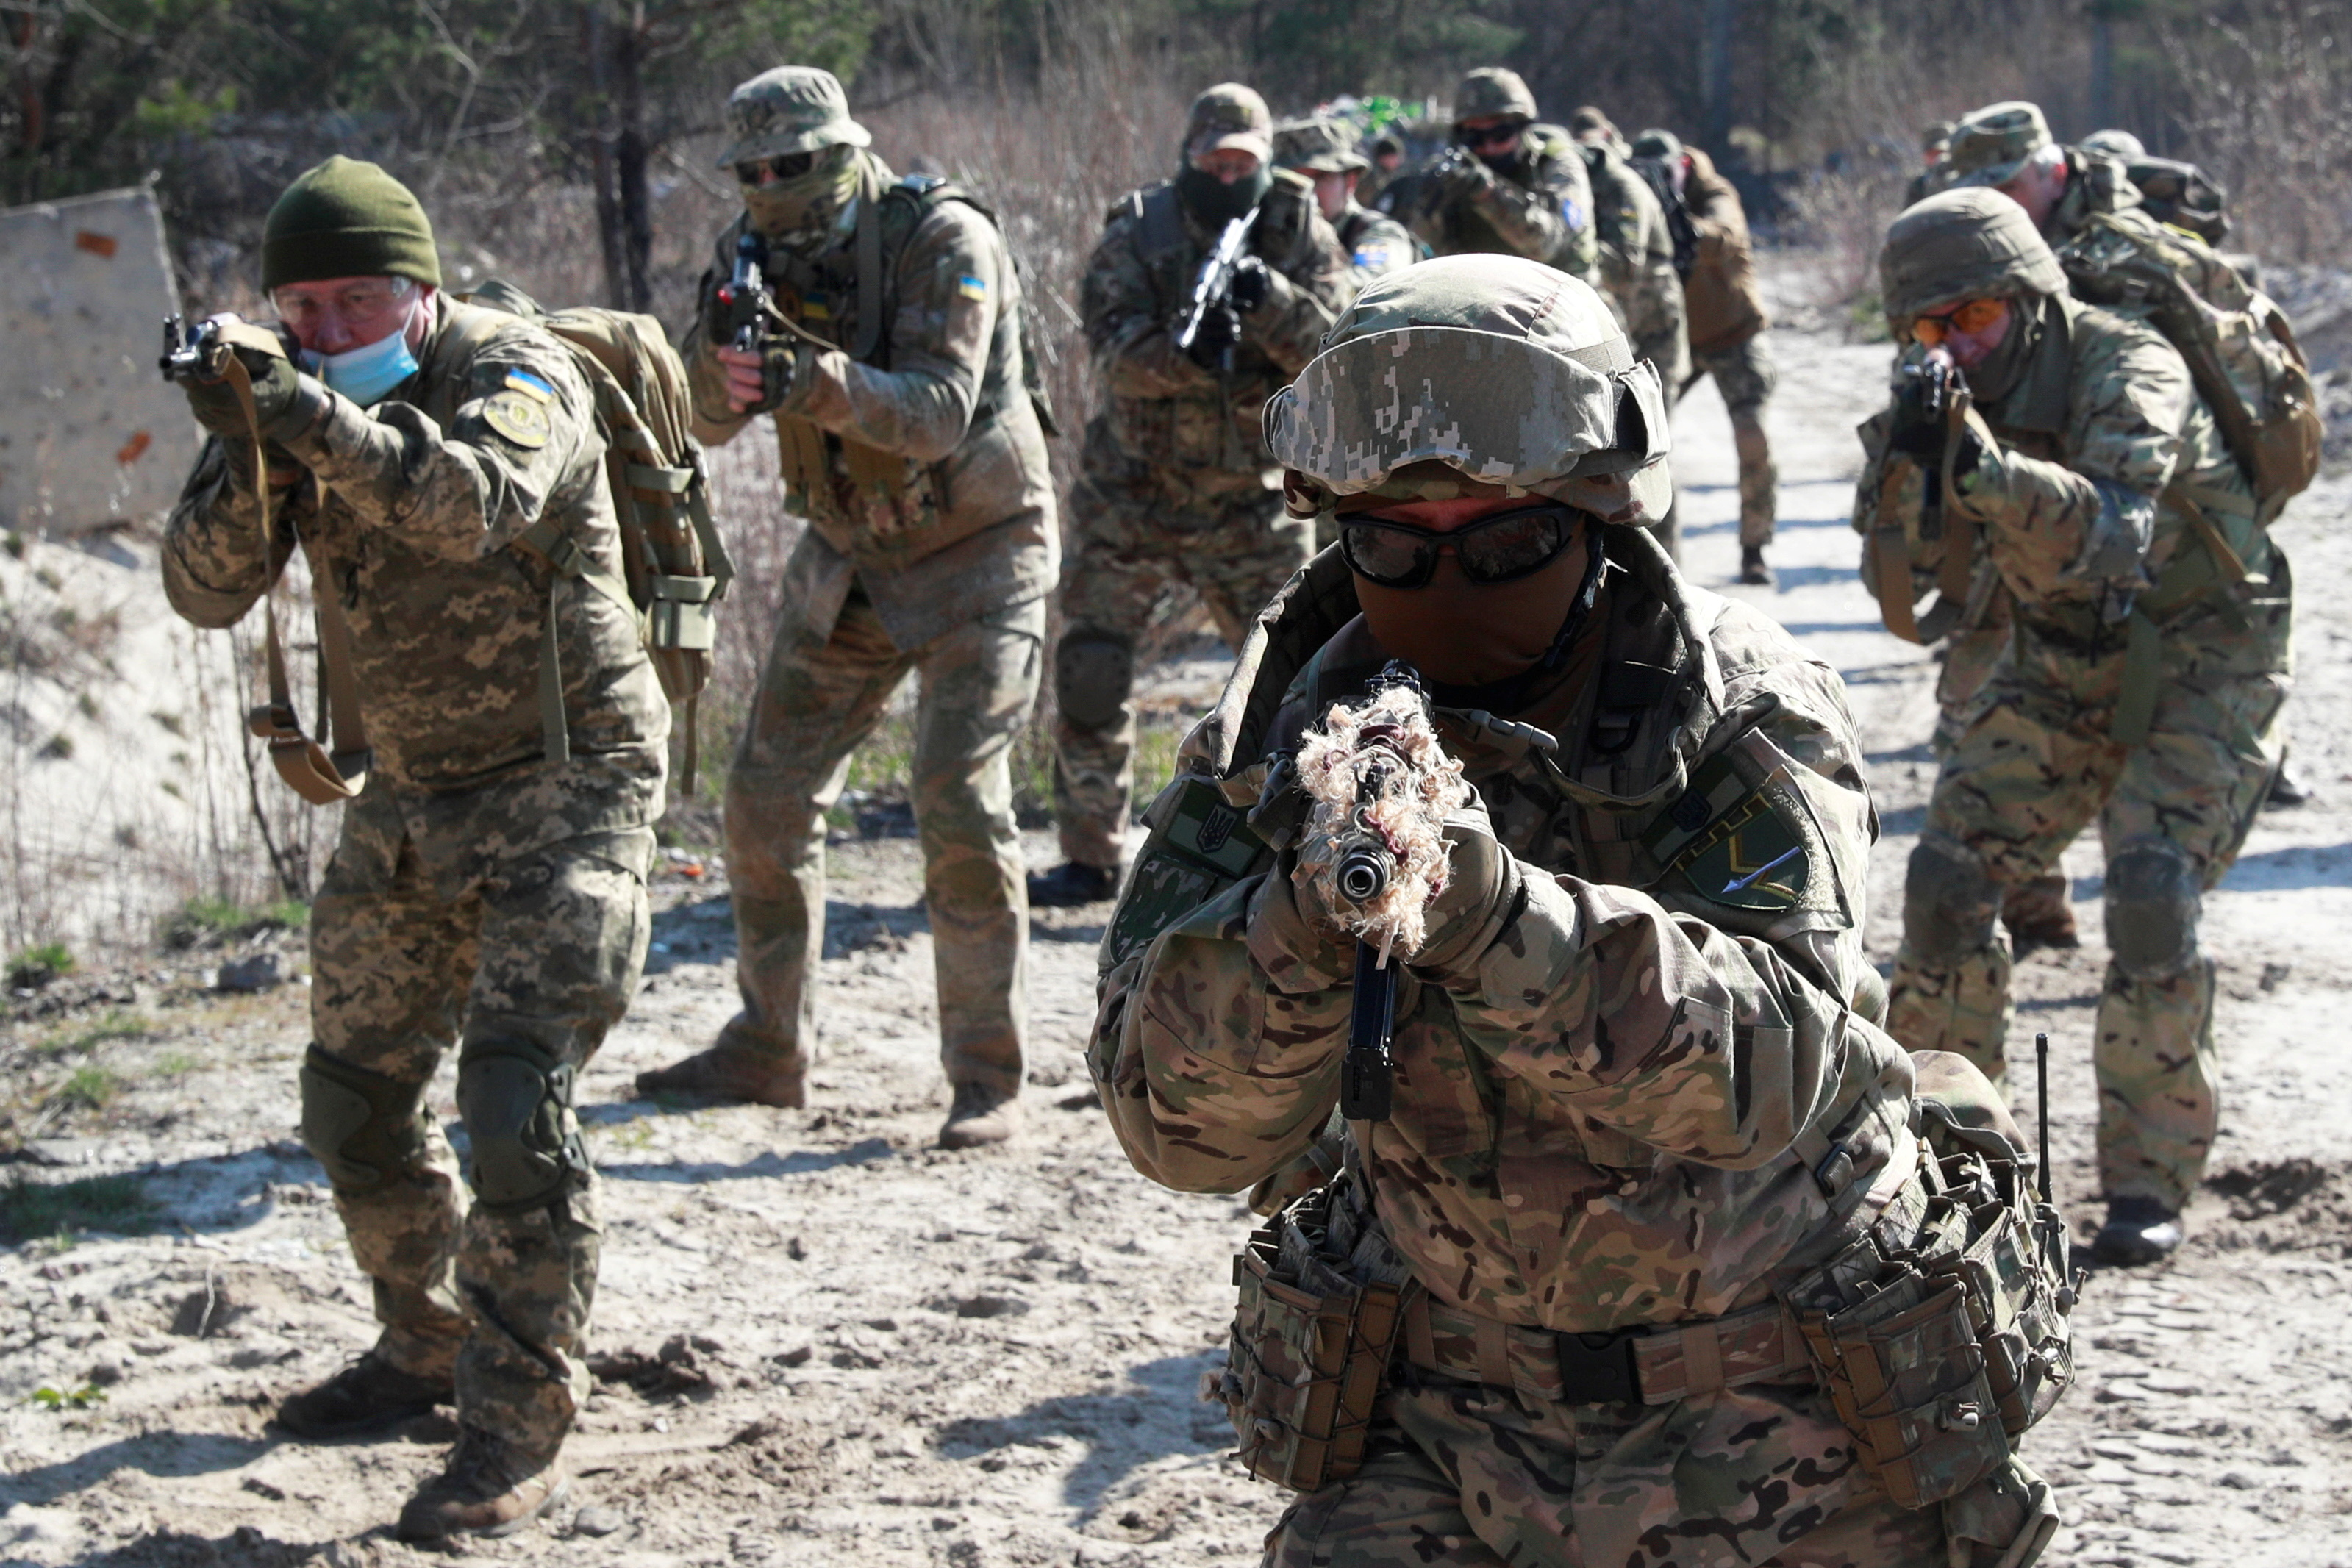 Reservists of the 130th battalion of the Ukrainian Territorial Defence Forces attend military exercises on outskirts of Kyiv, Ukraine April 10, 2021. REUTERS/Valentyn Ogirenko